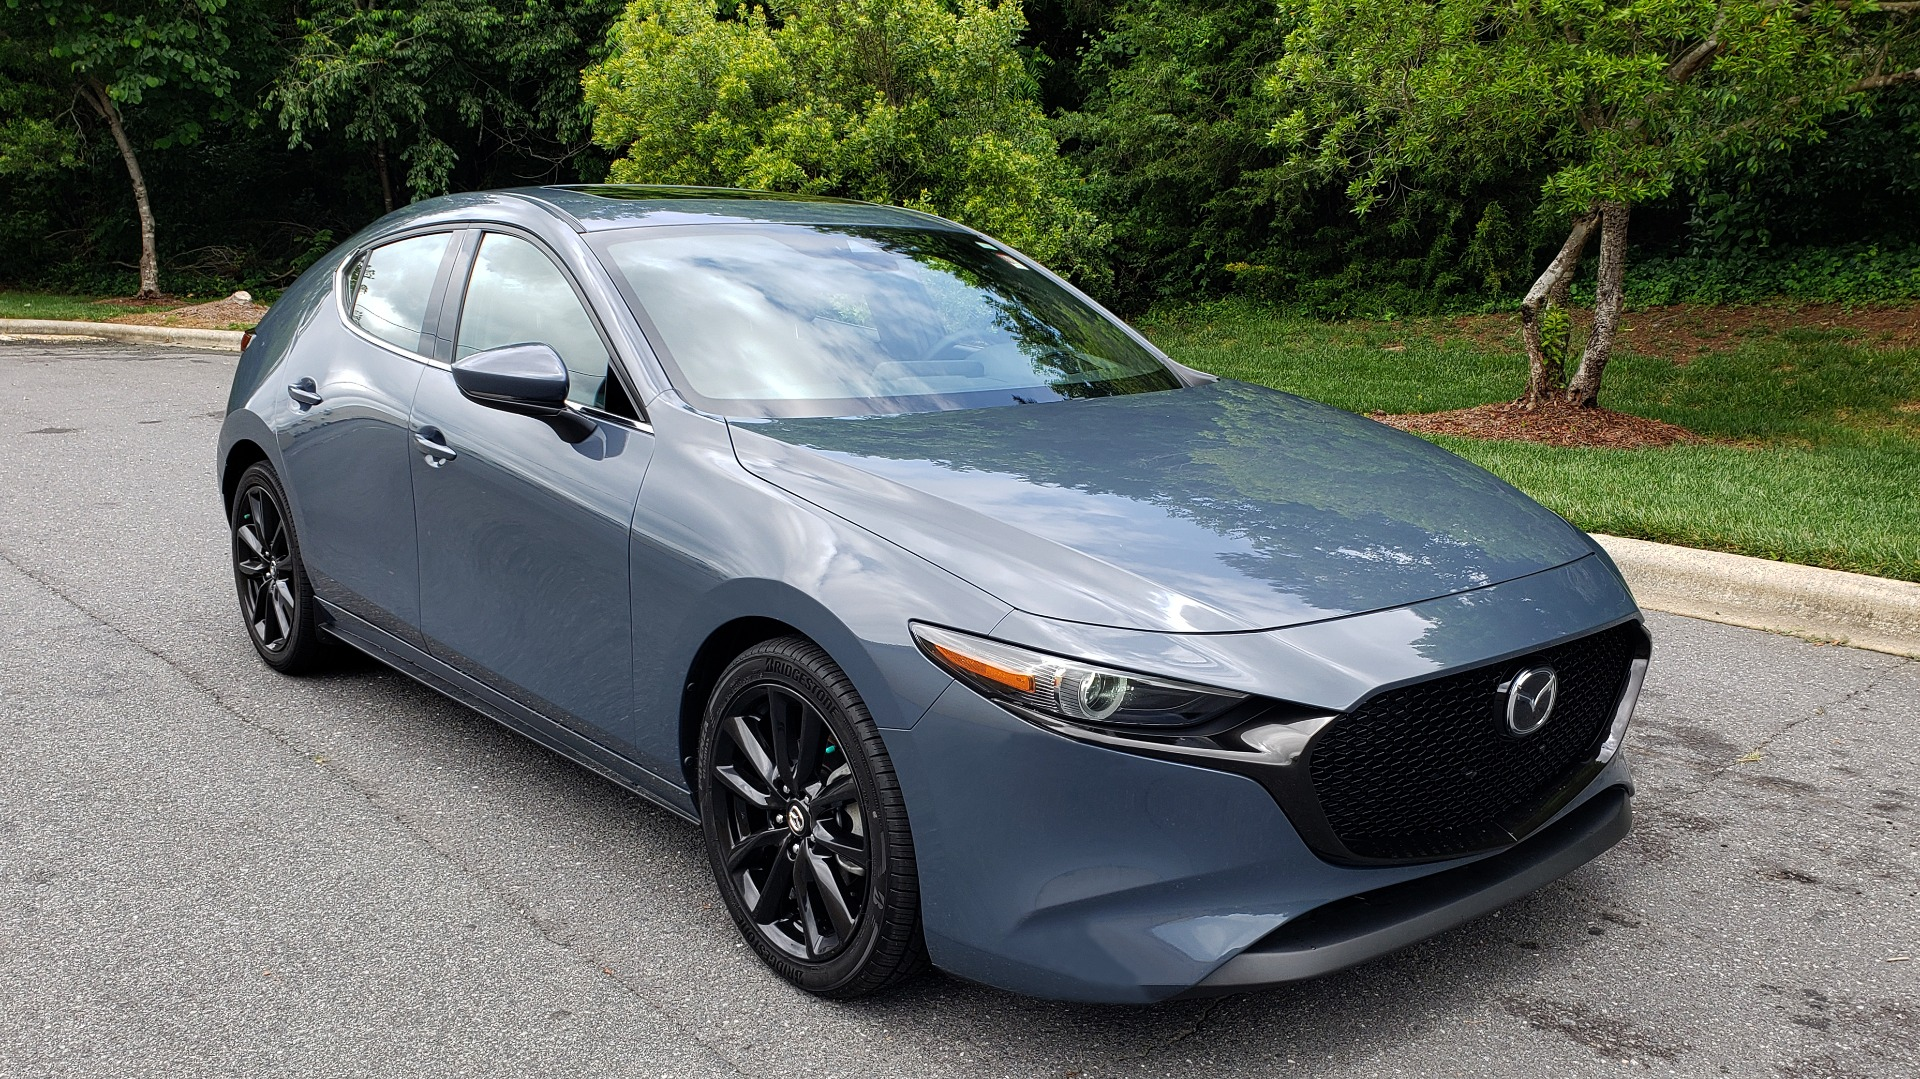 Used 2019 Mazda MAZDA3 HATCHBACK PREMIUM PKG / AUTO / 18IN BLACK ALLOY WHEELS / BOSE / LEATHER for sale Sold at Formula Imports in Charlotte NC 28227 4